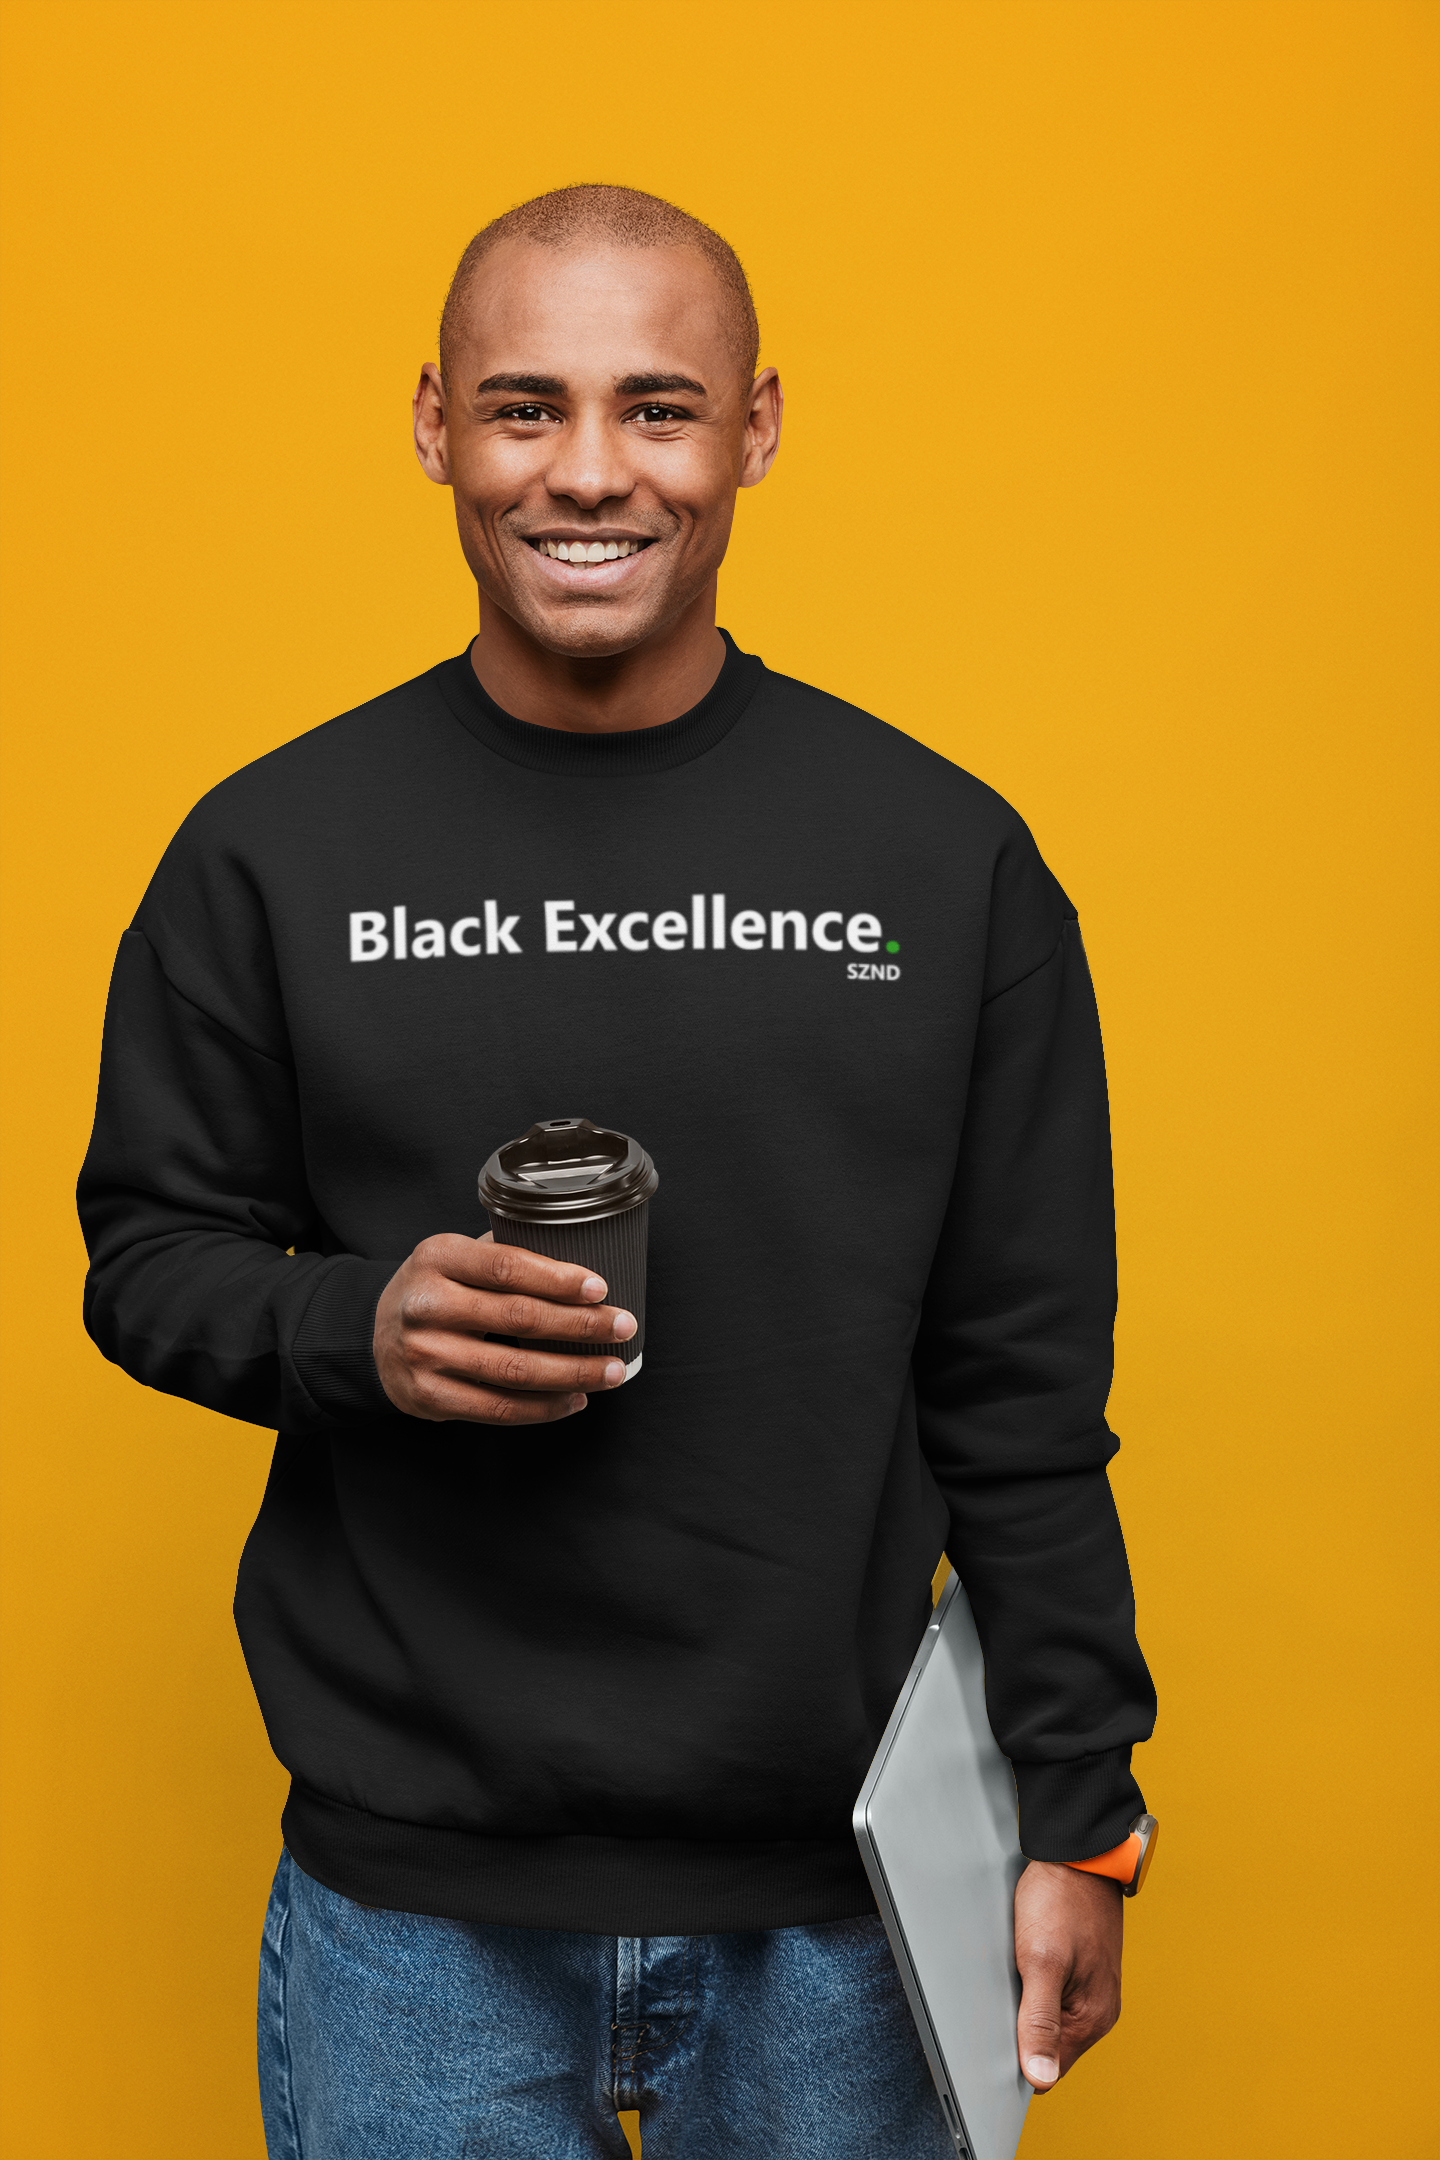 Black Excellence Jumper